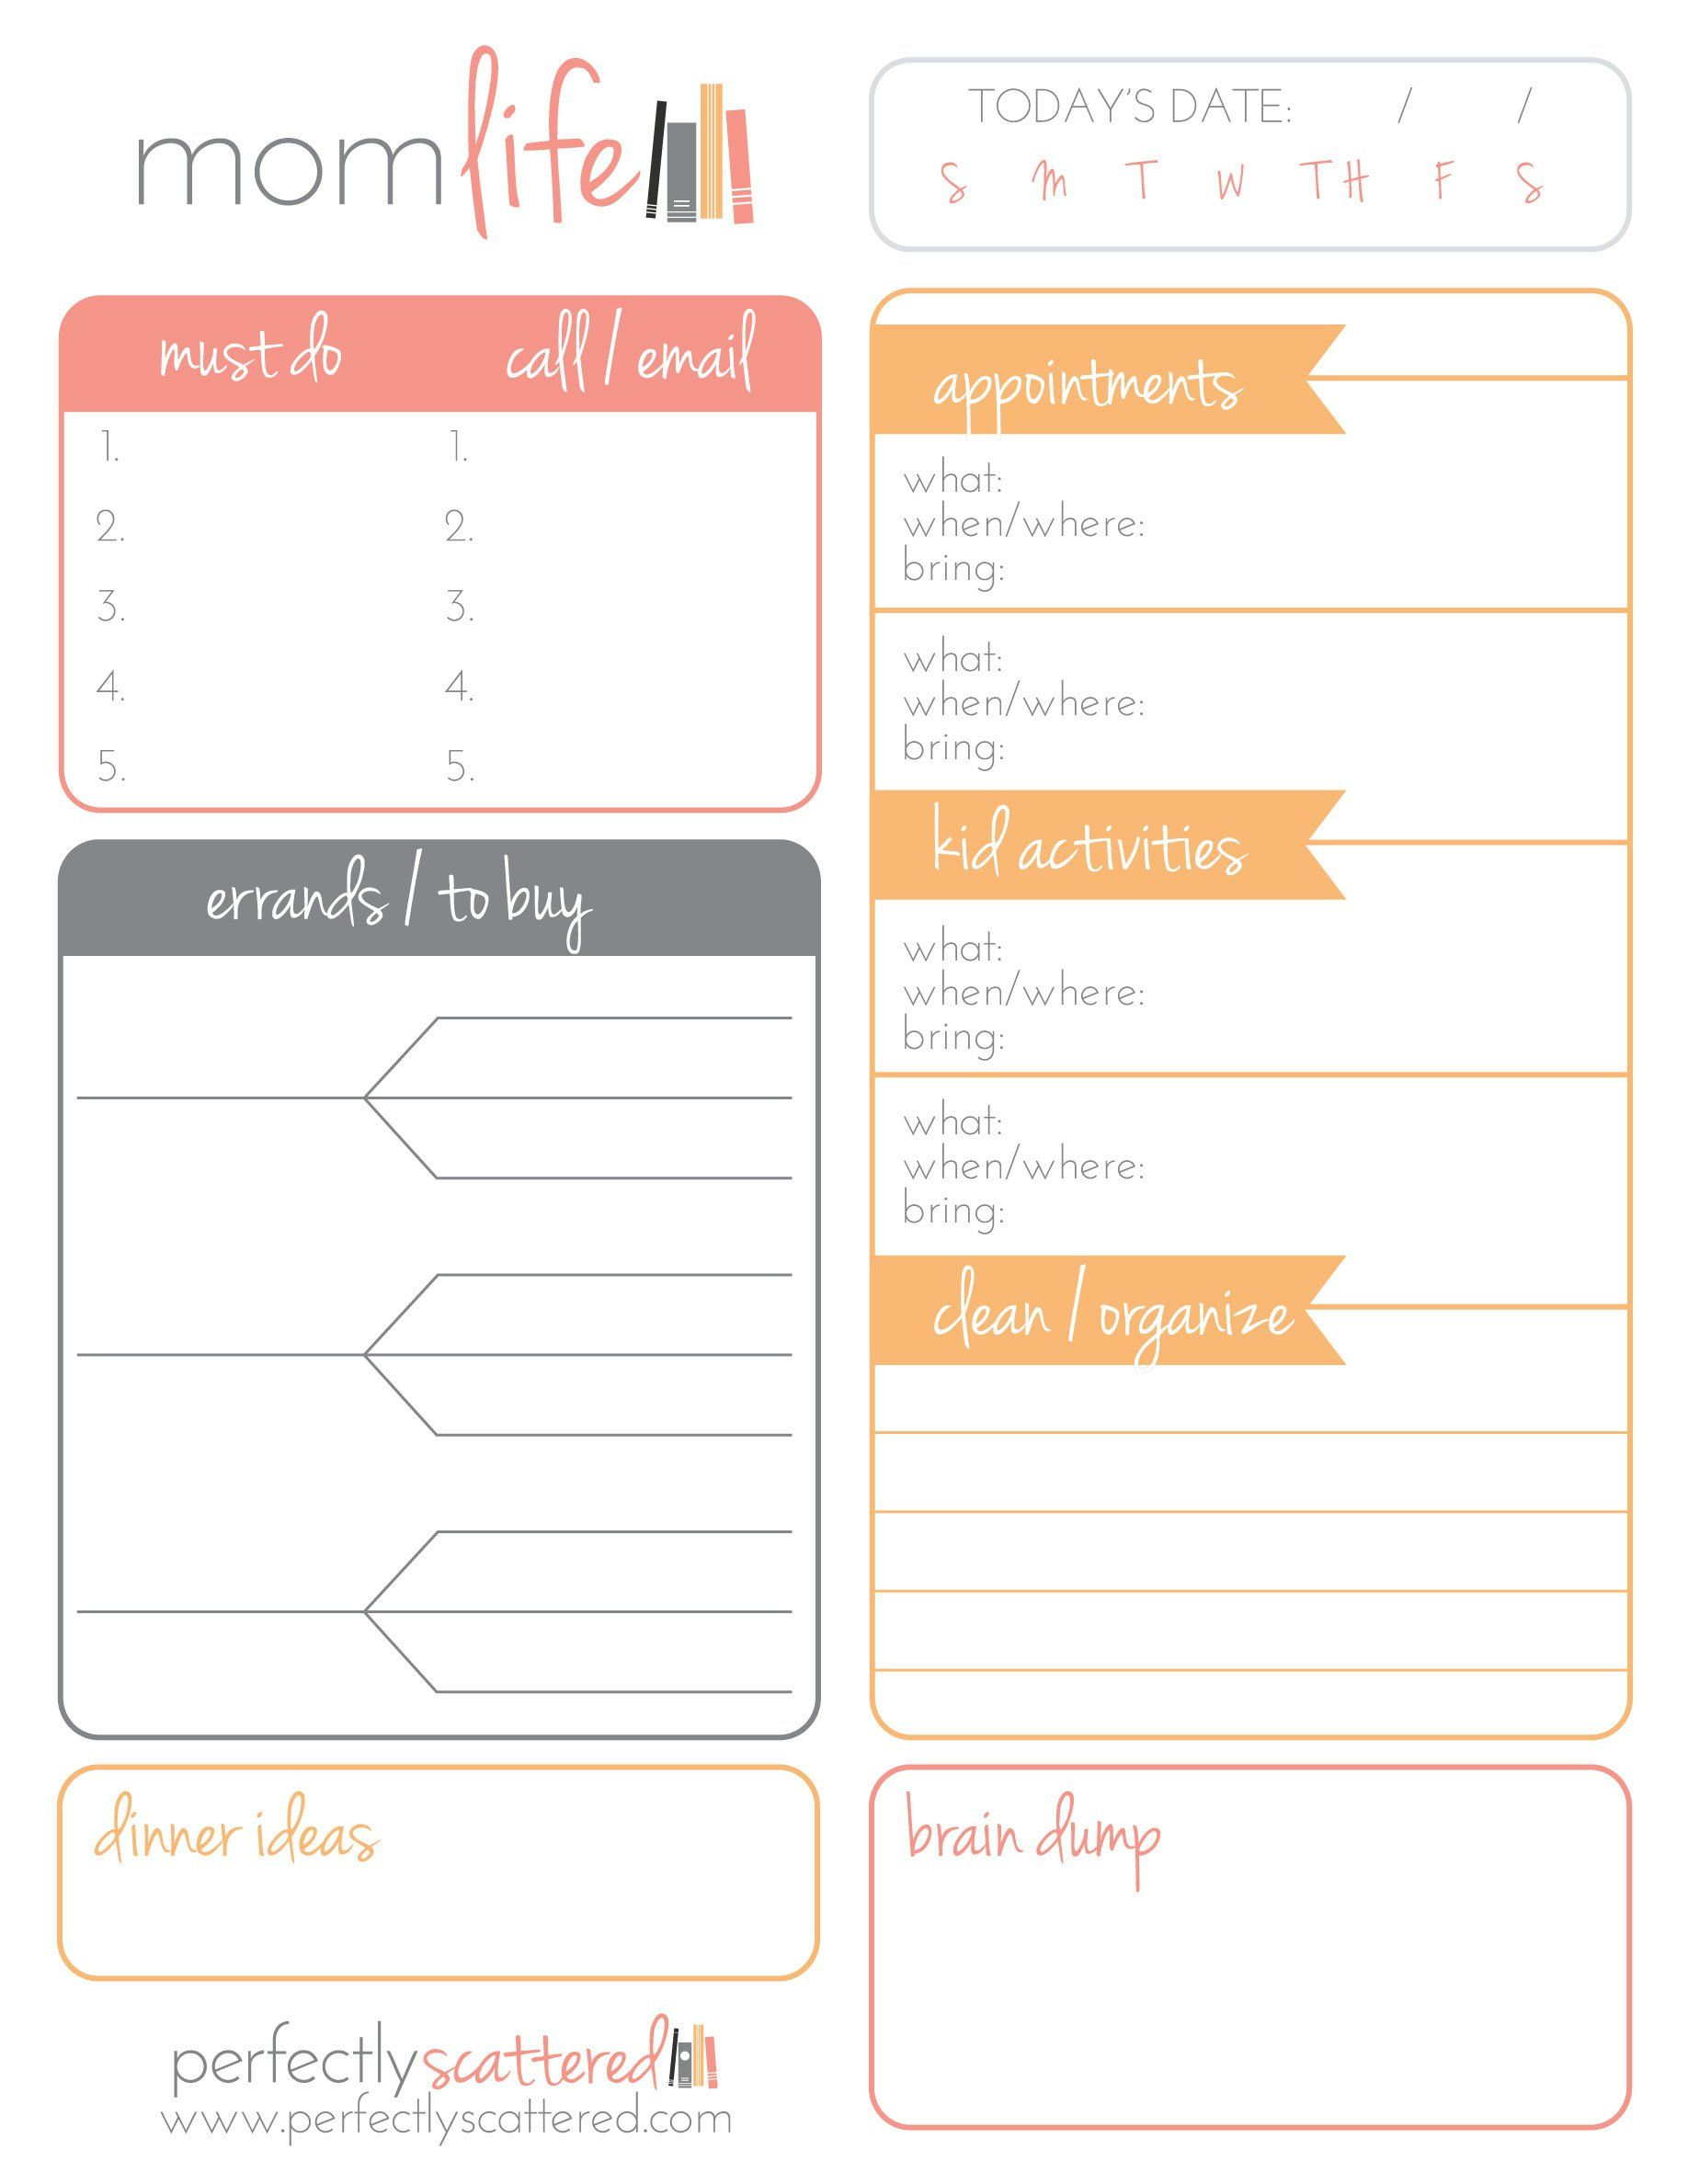 free printable daily planner for moms free printable planners and free. Black Bedroom Furniture Sets. Home Design Ideas